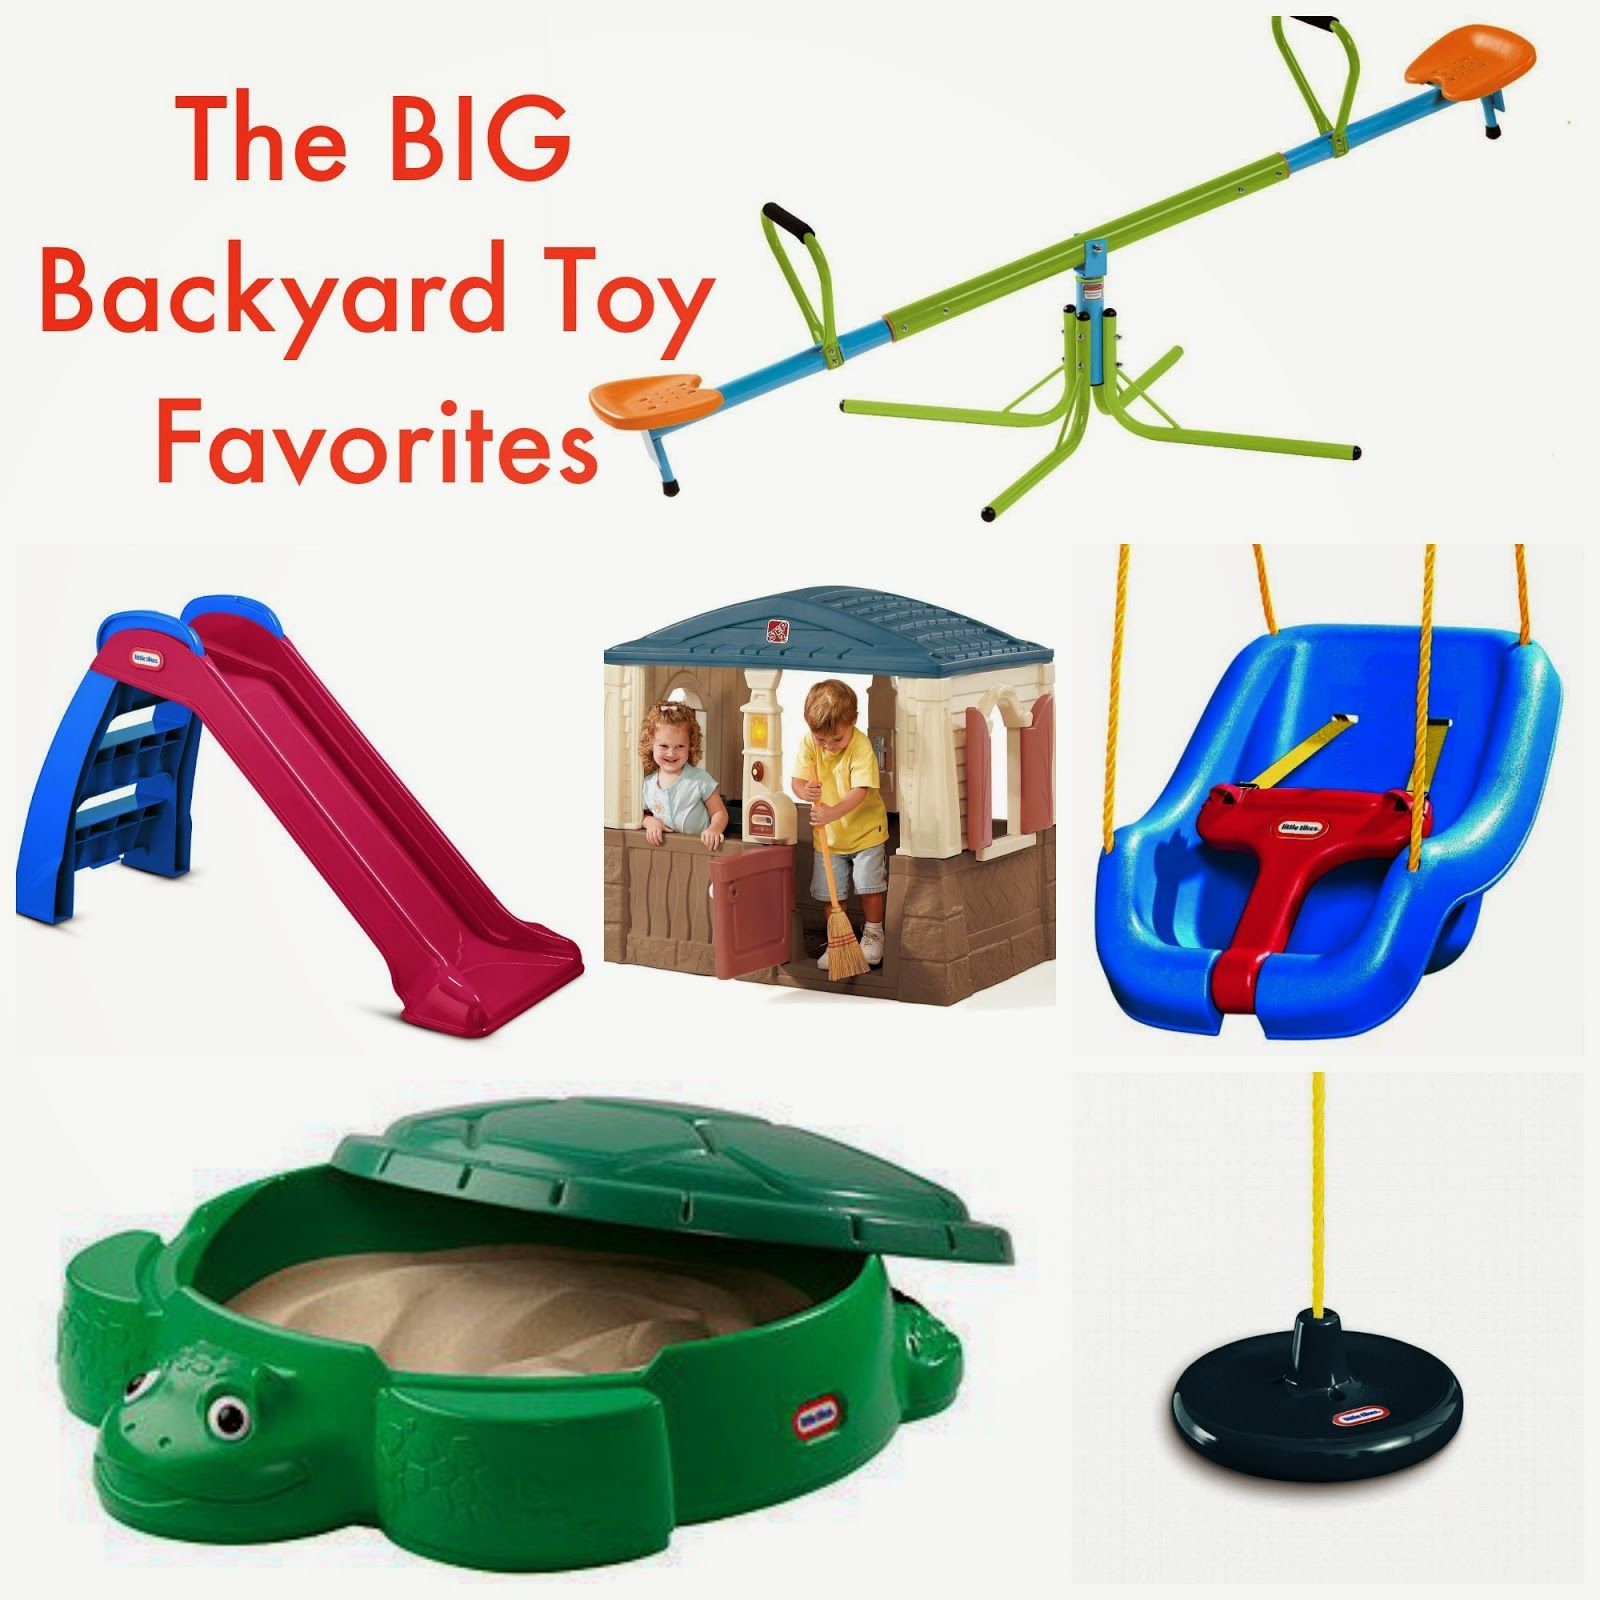 The Ultimate Backyard Toy Guide for Fun & Active Kids